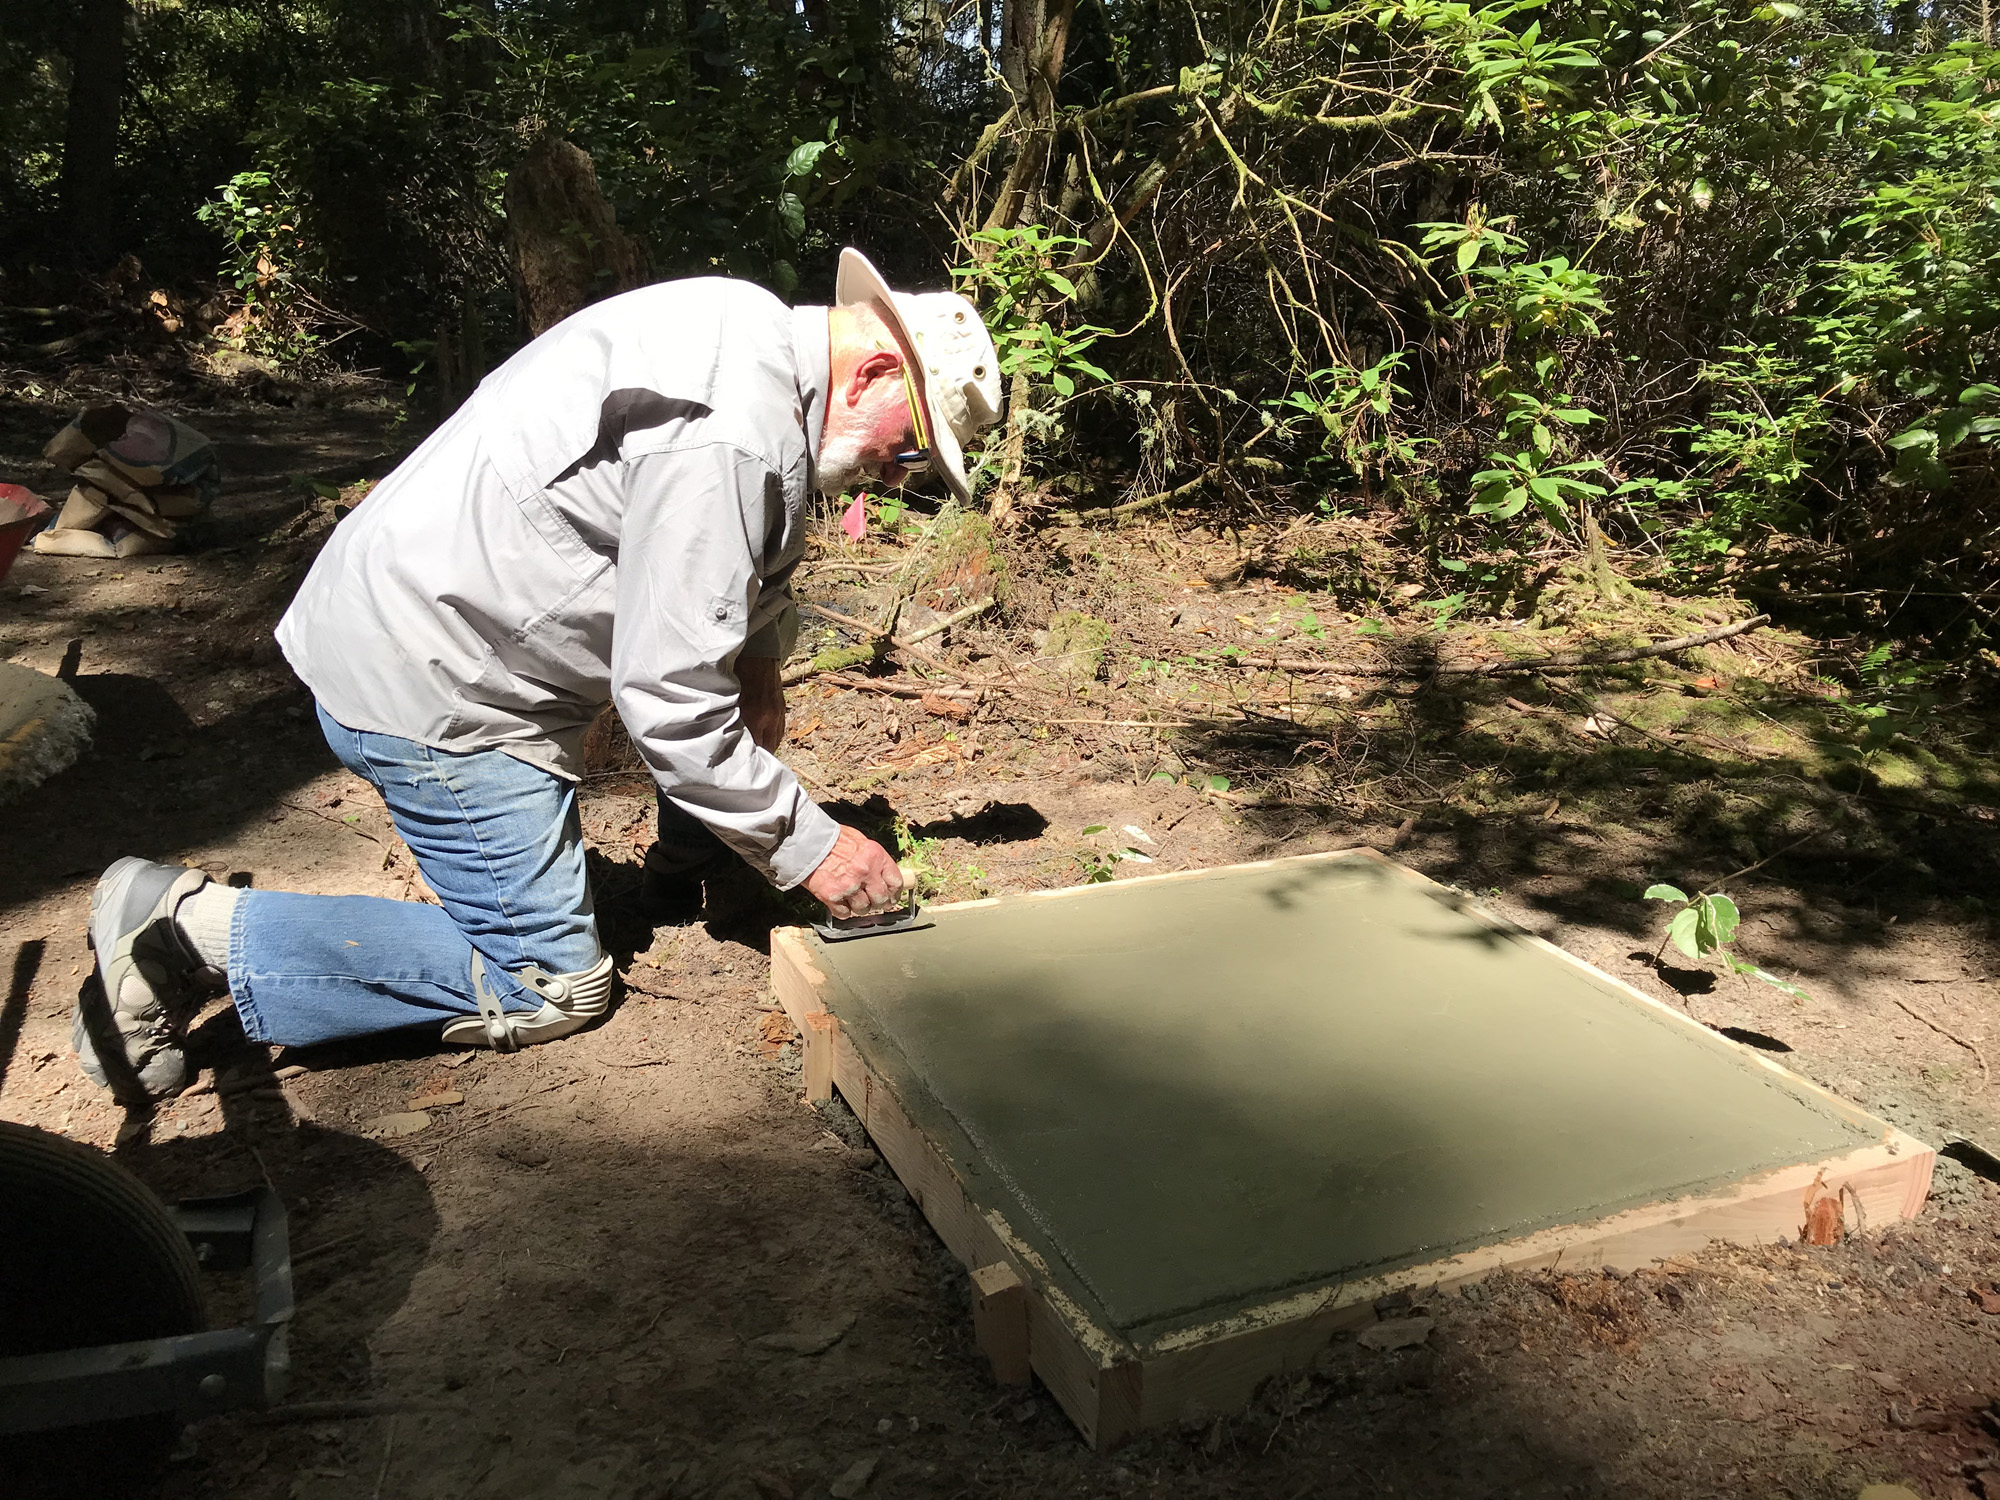 Ken Price working on first concrete sculpture plinth at Price Sculpture Forest